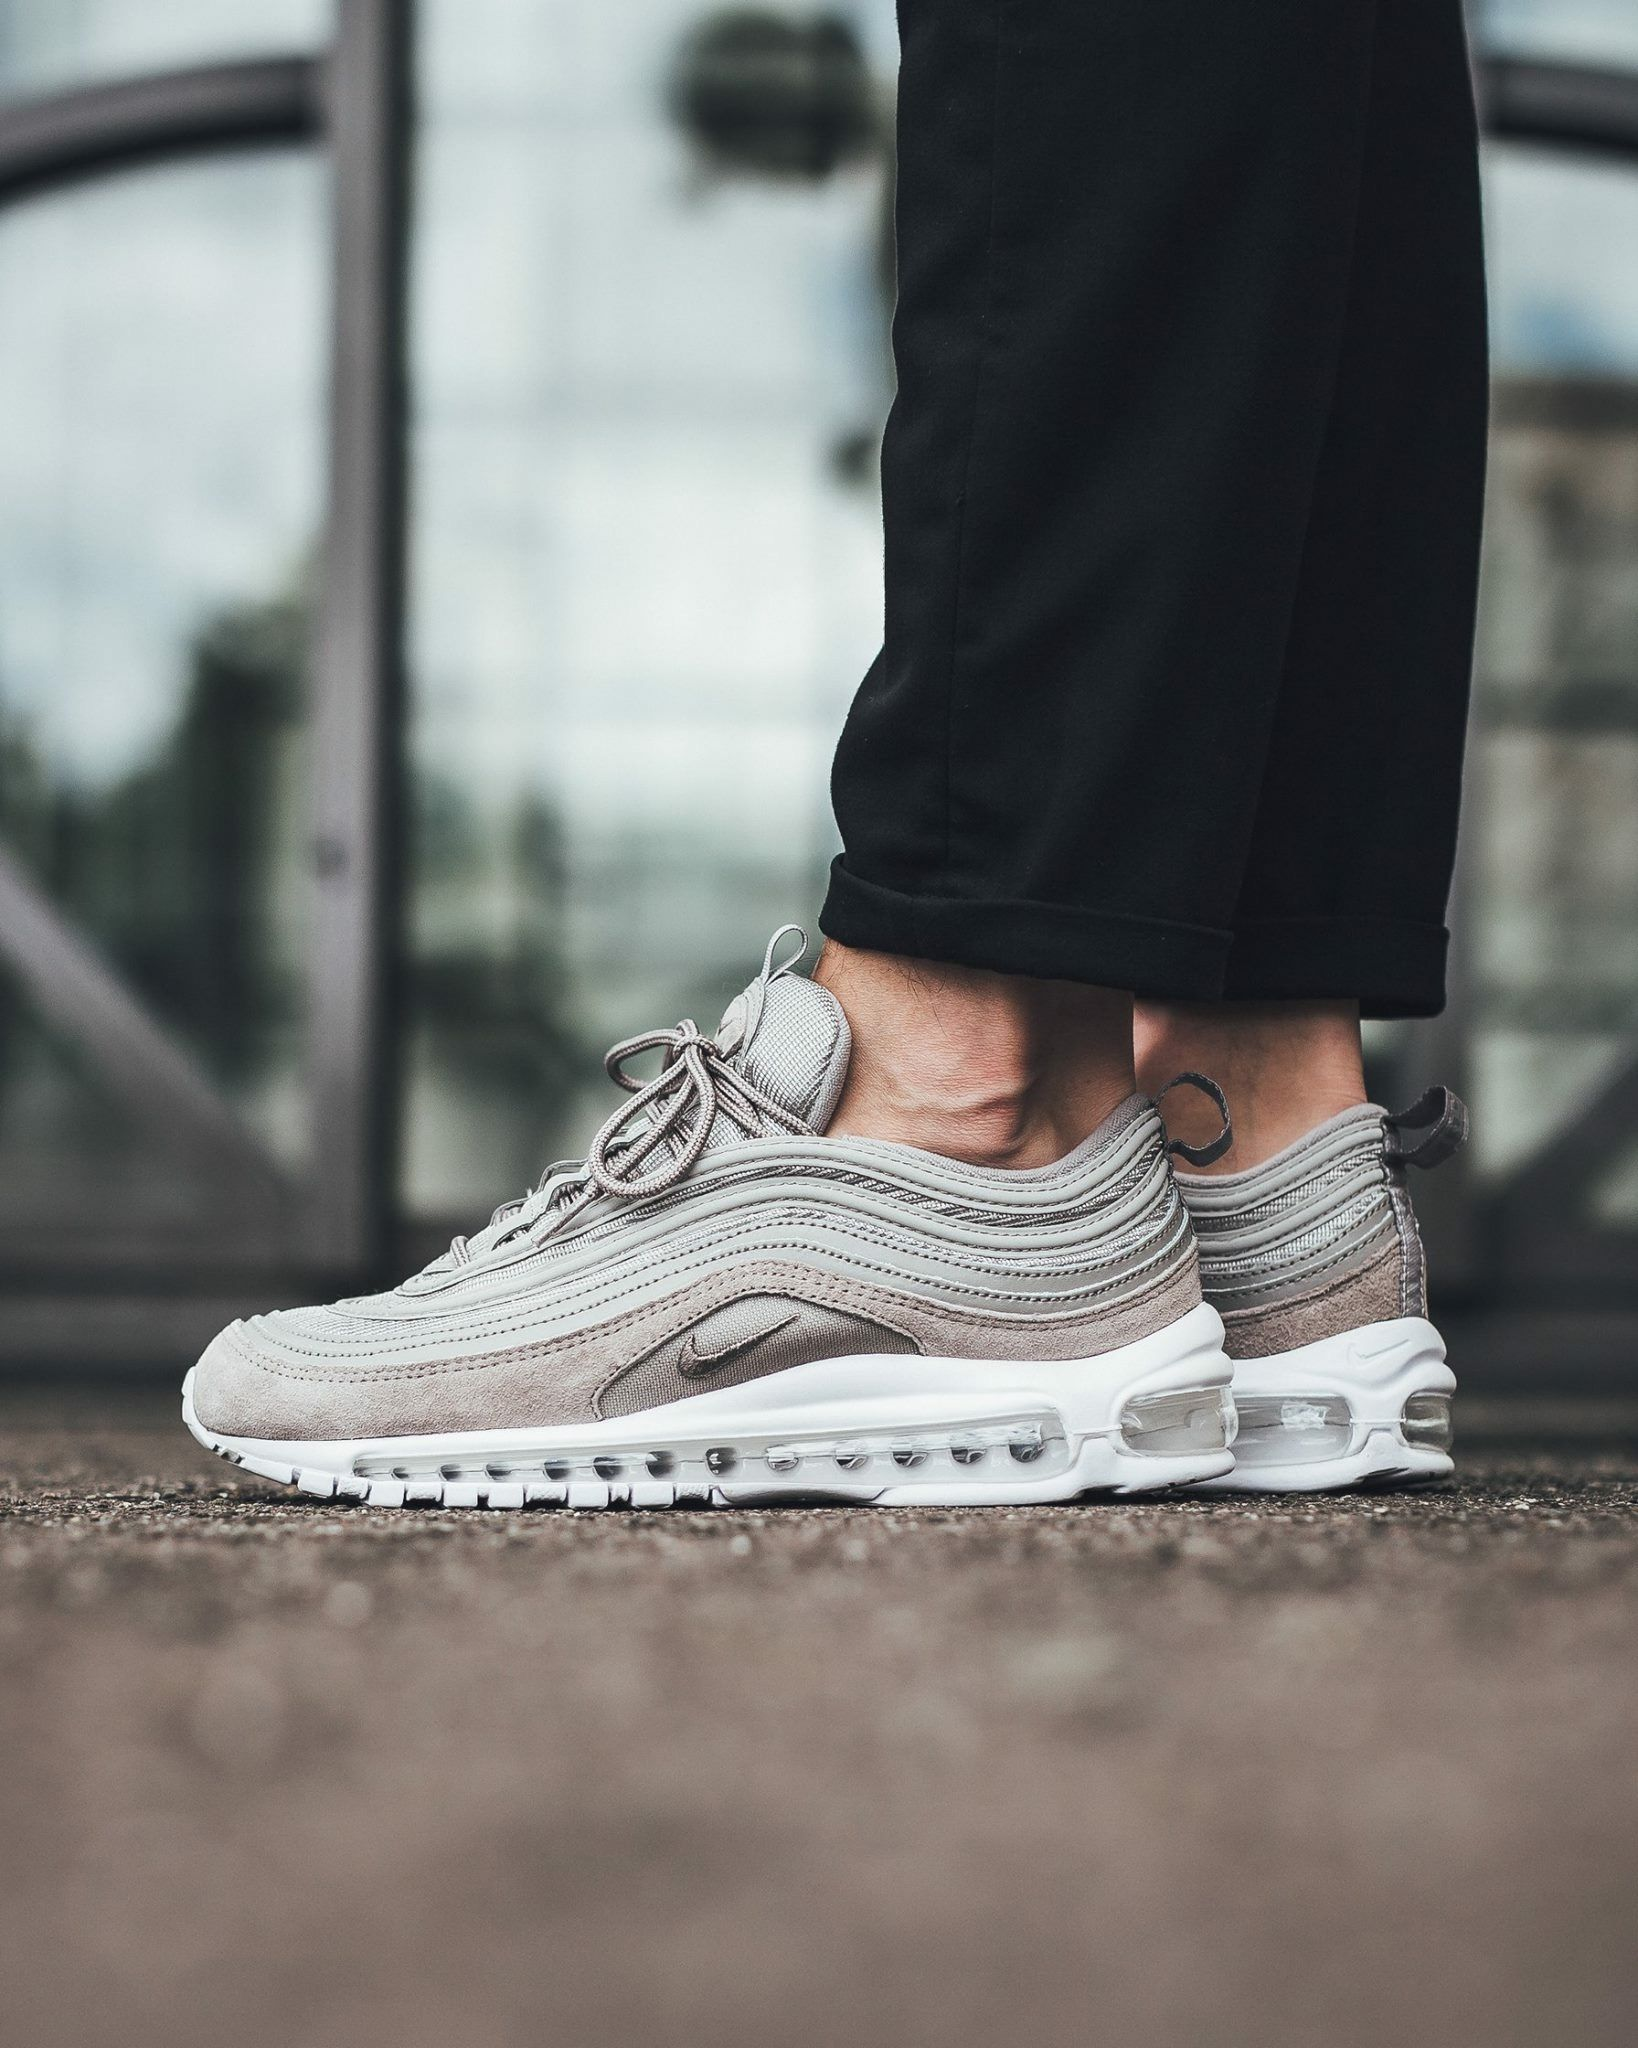 Nike Air Max 97 https://tumblr.com/ZnVlHd2OD7XUq